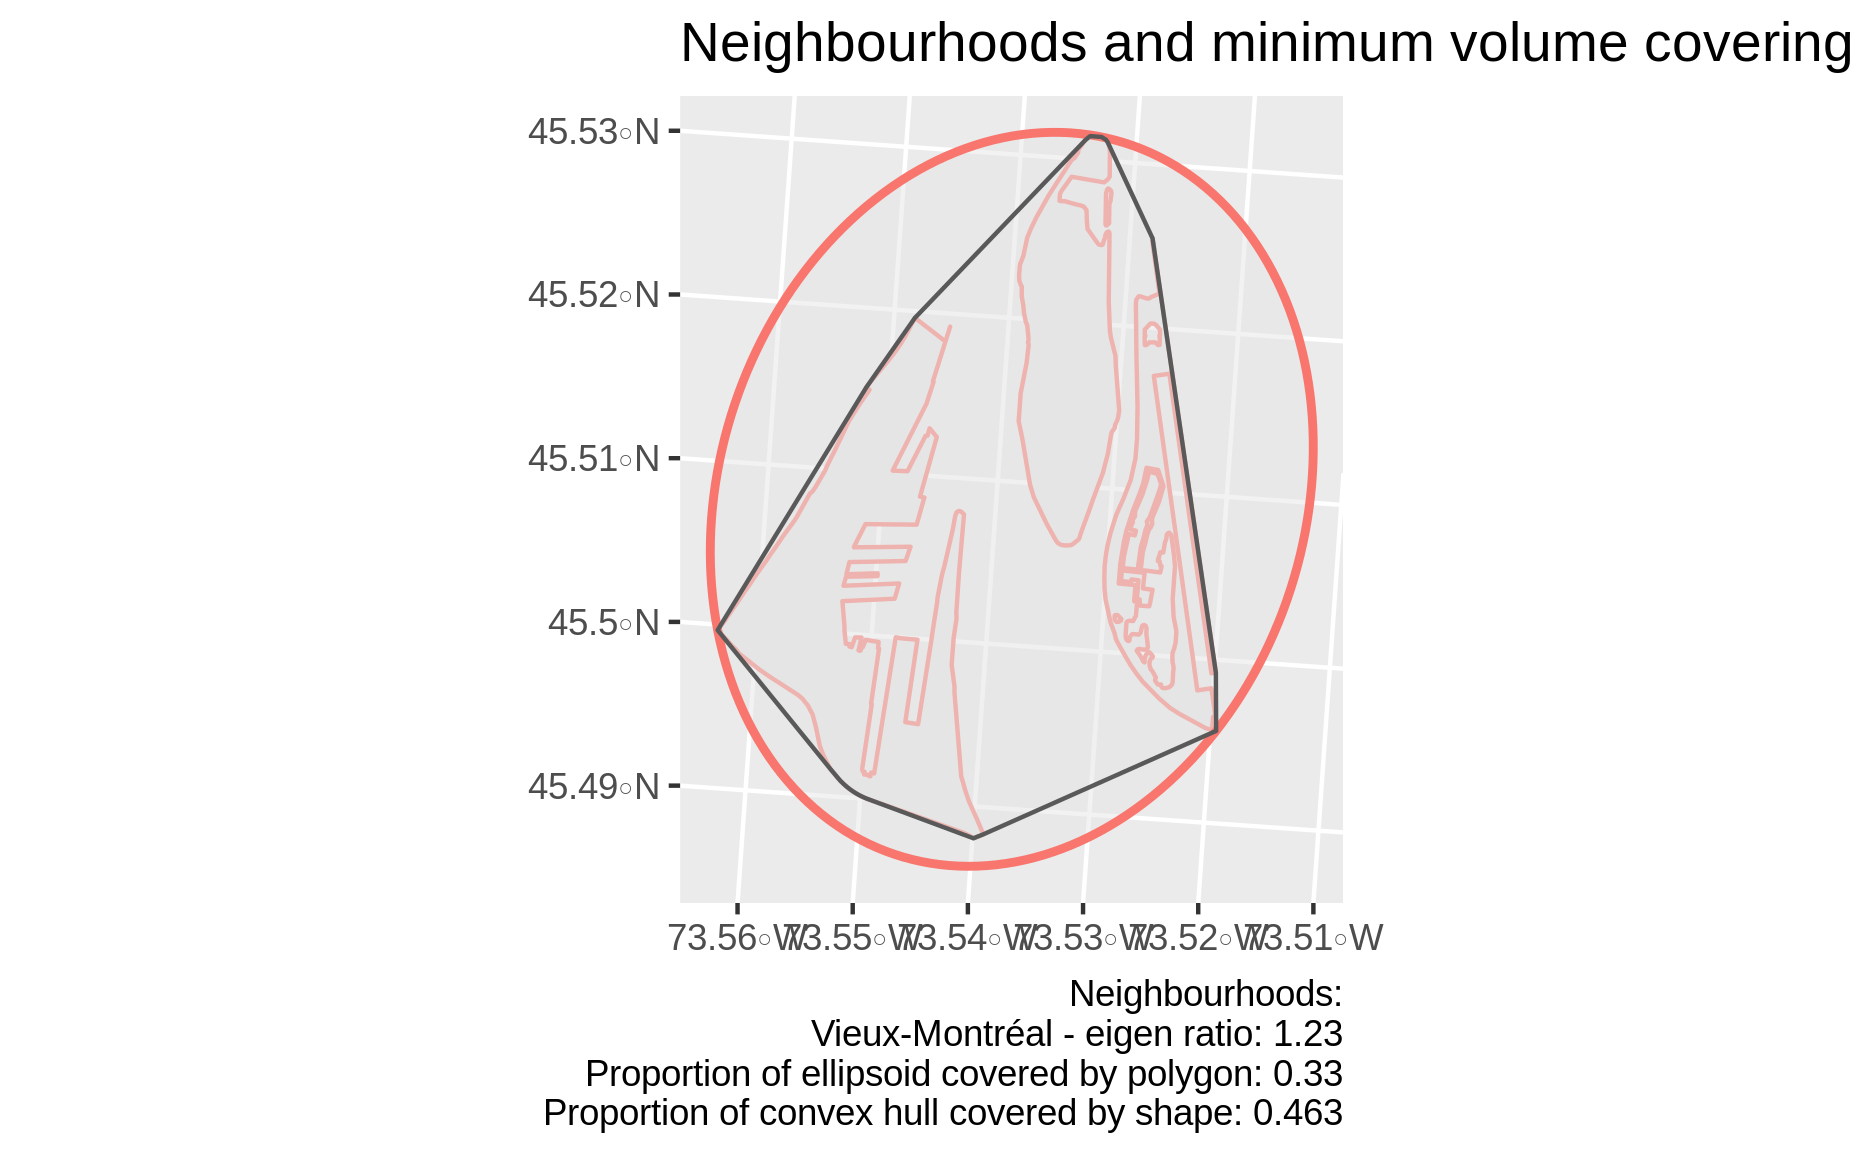 Neighbourhood with relatively symmetric MVE, but highly non-convex shape